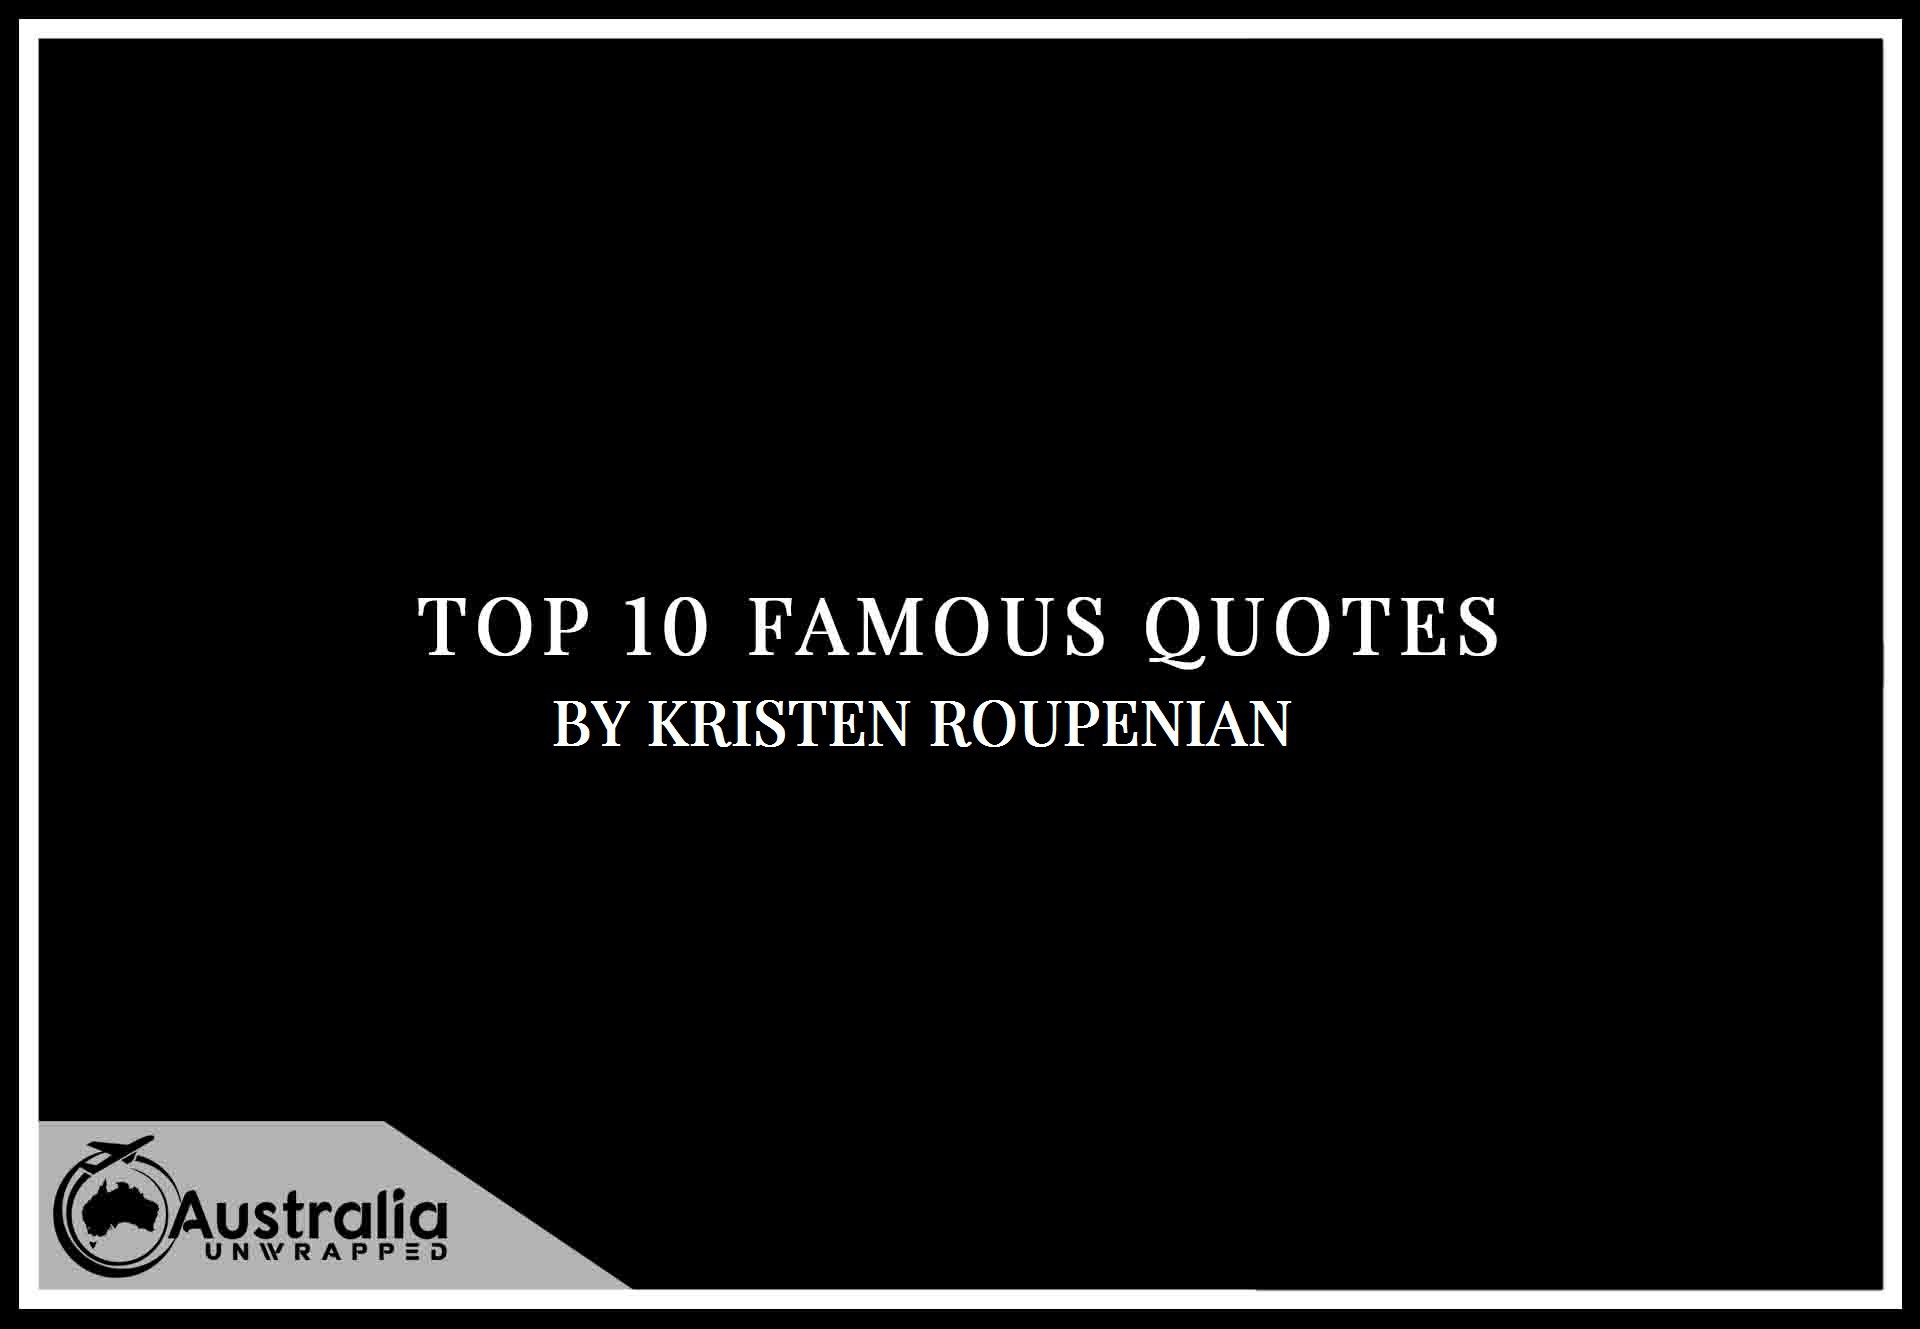 Kristen Roupenian's Top 10 Popular and Famous Quotes